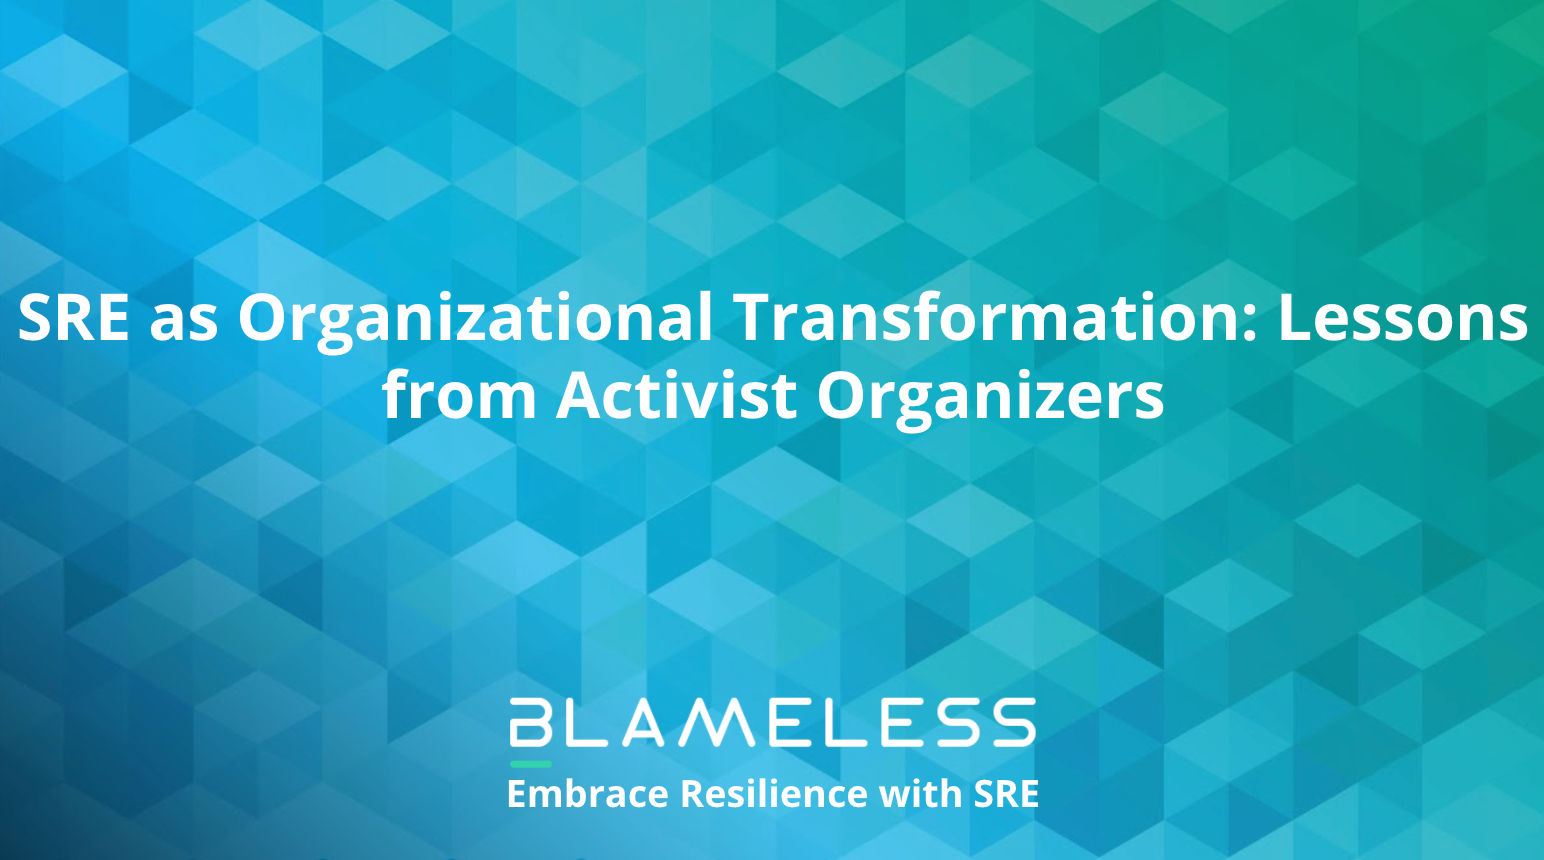 SRE as Organizational Transformation: Lessons from Activist Organizers